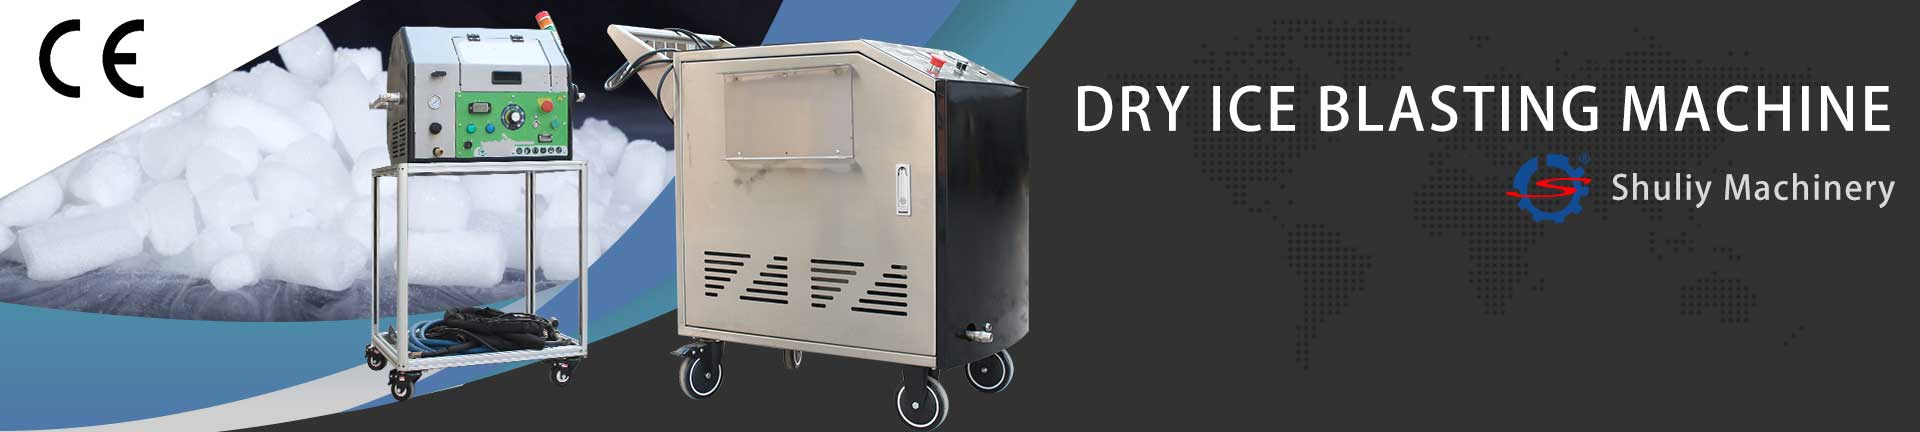 Supplier of complete dry ice manufacturing equipment